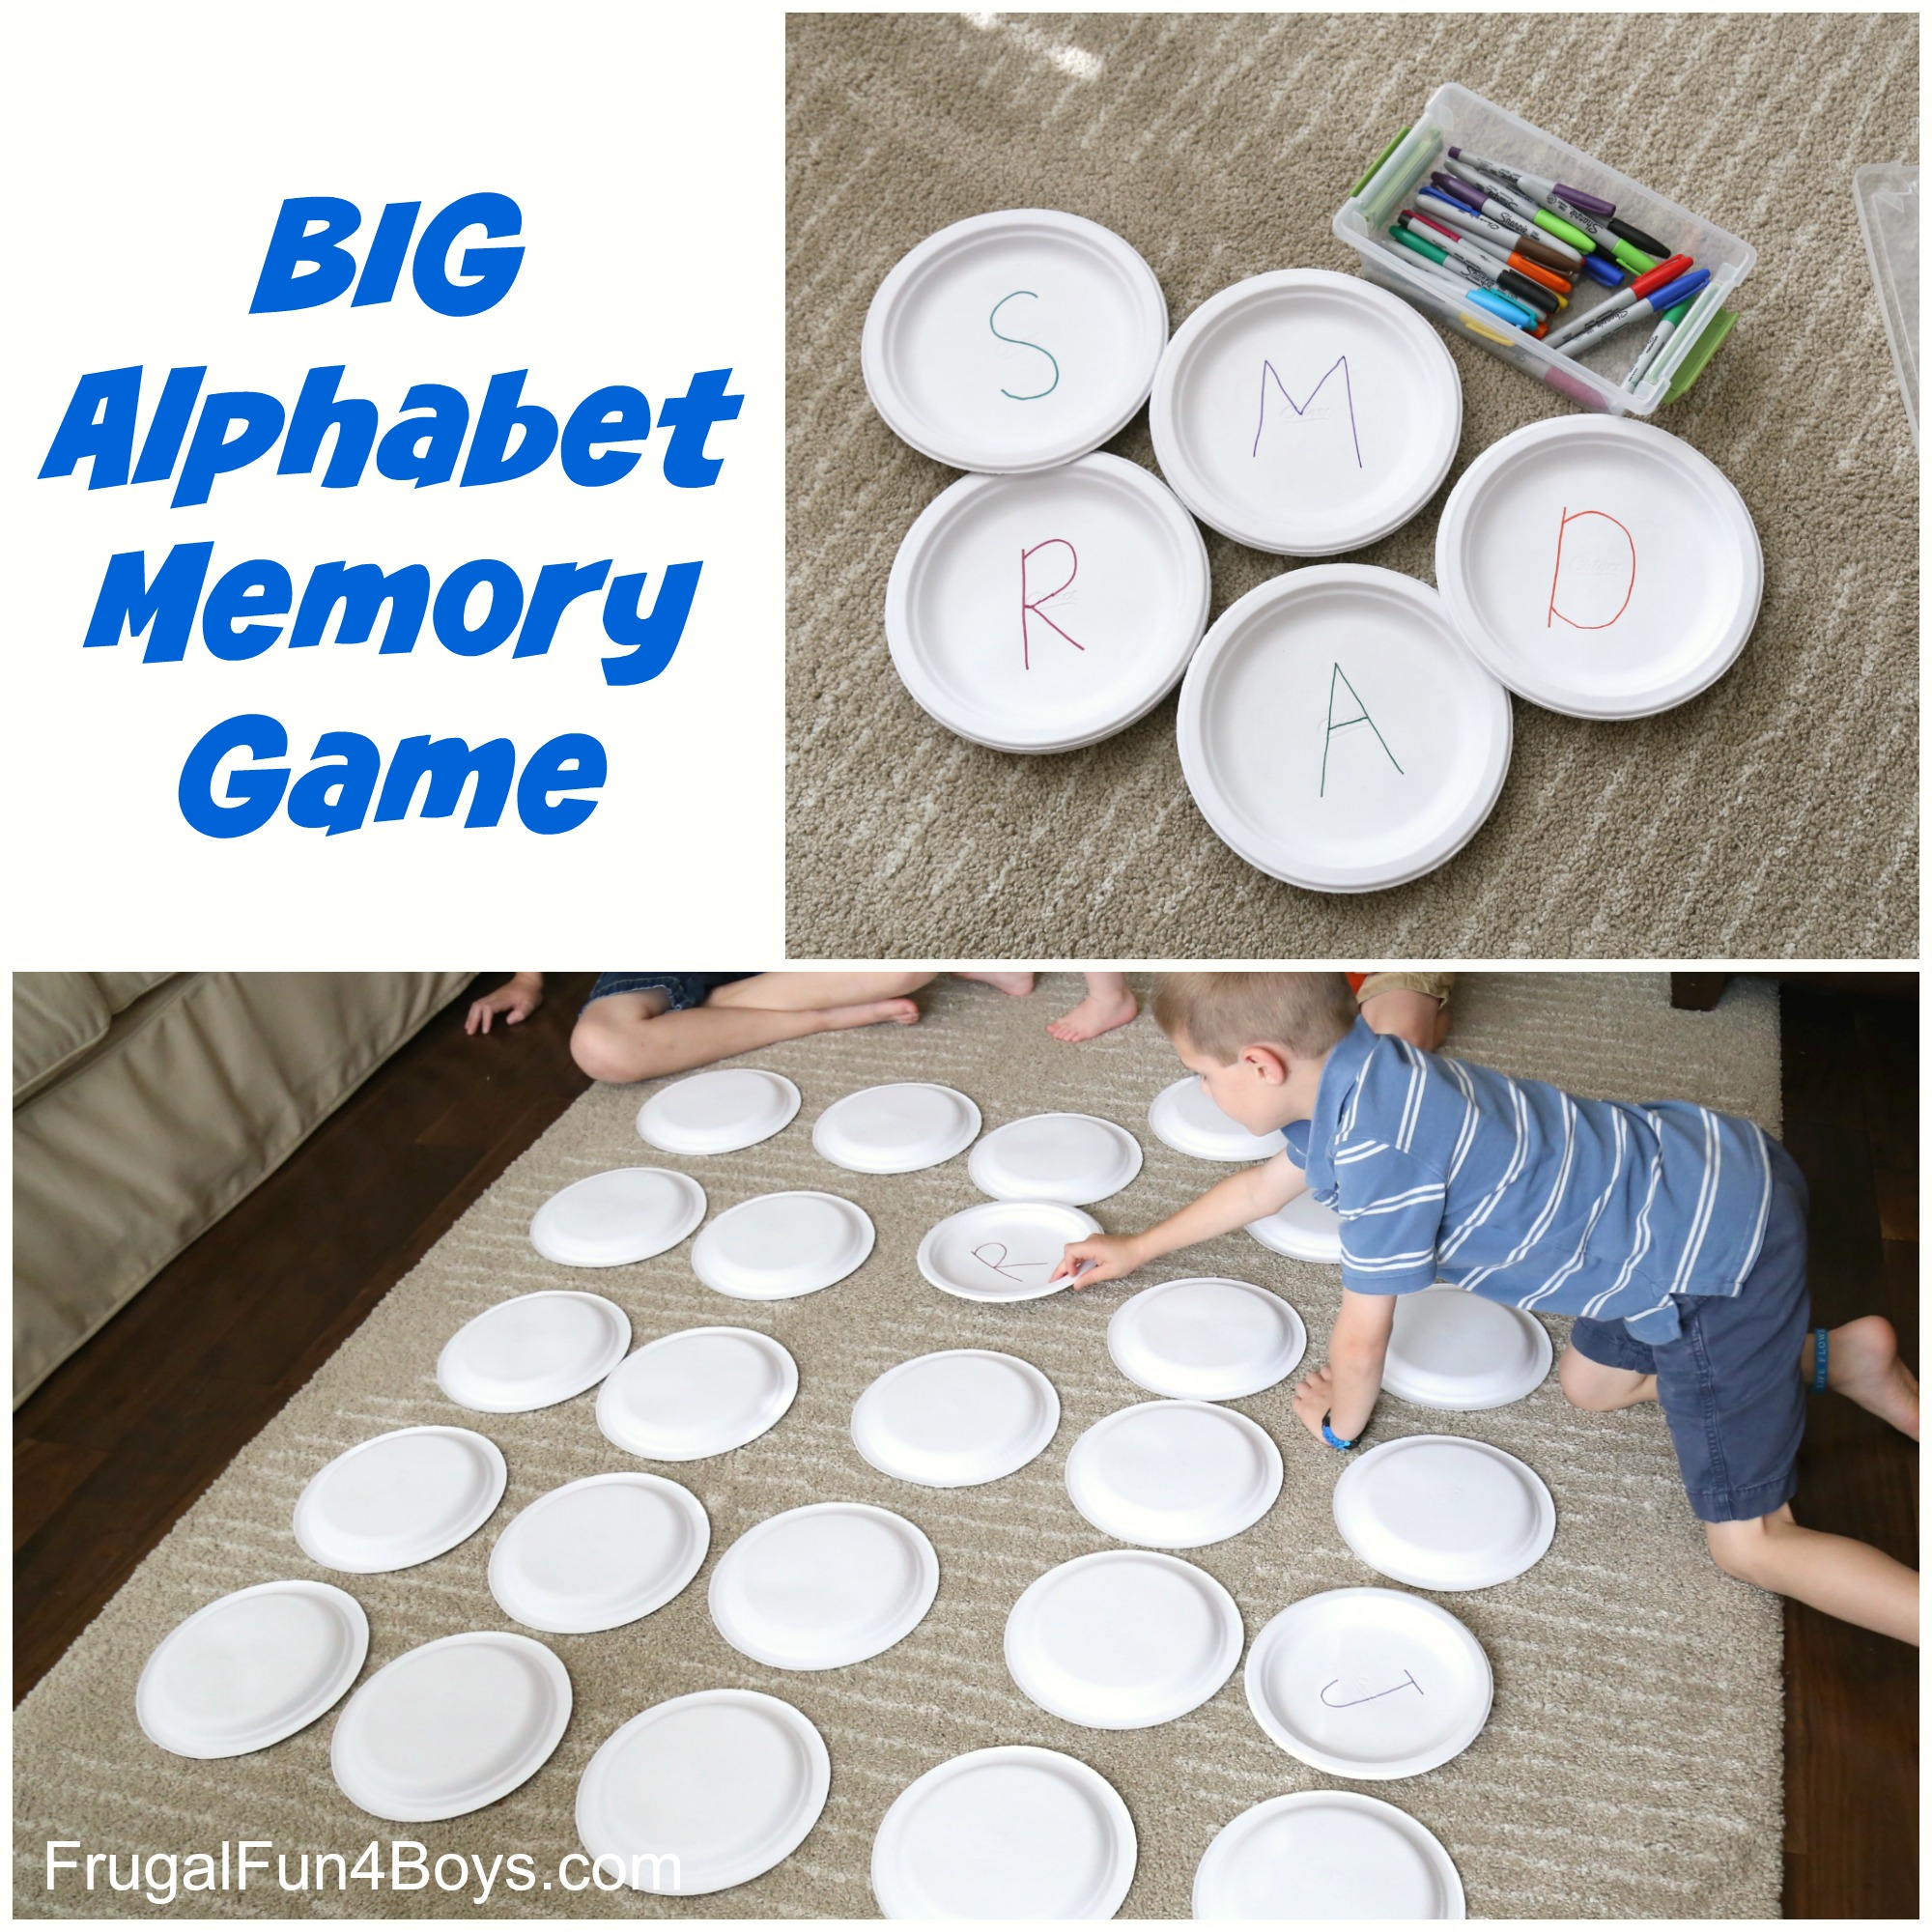 Big Alphabet Memory Game Learning Game For Preschoolers